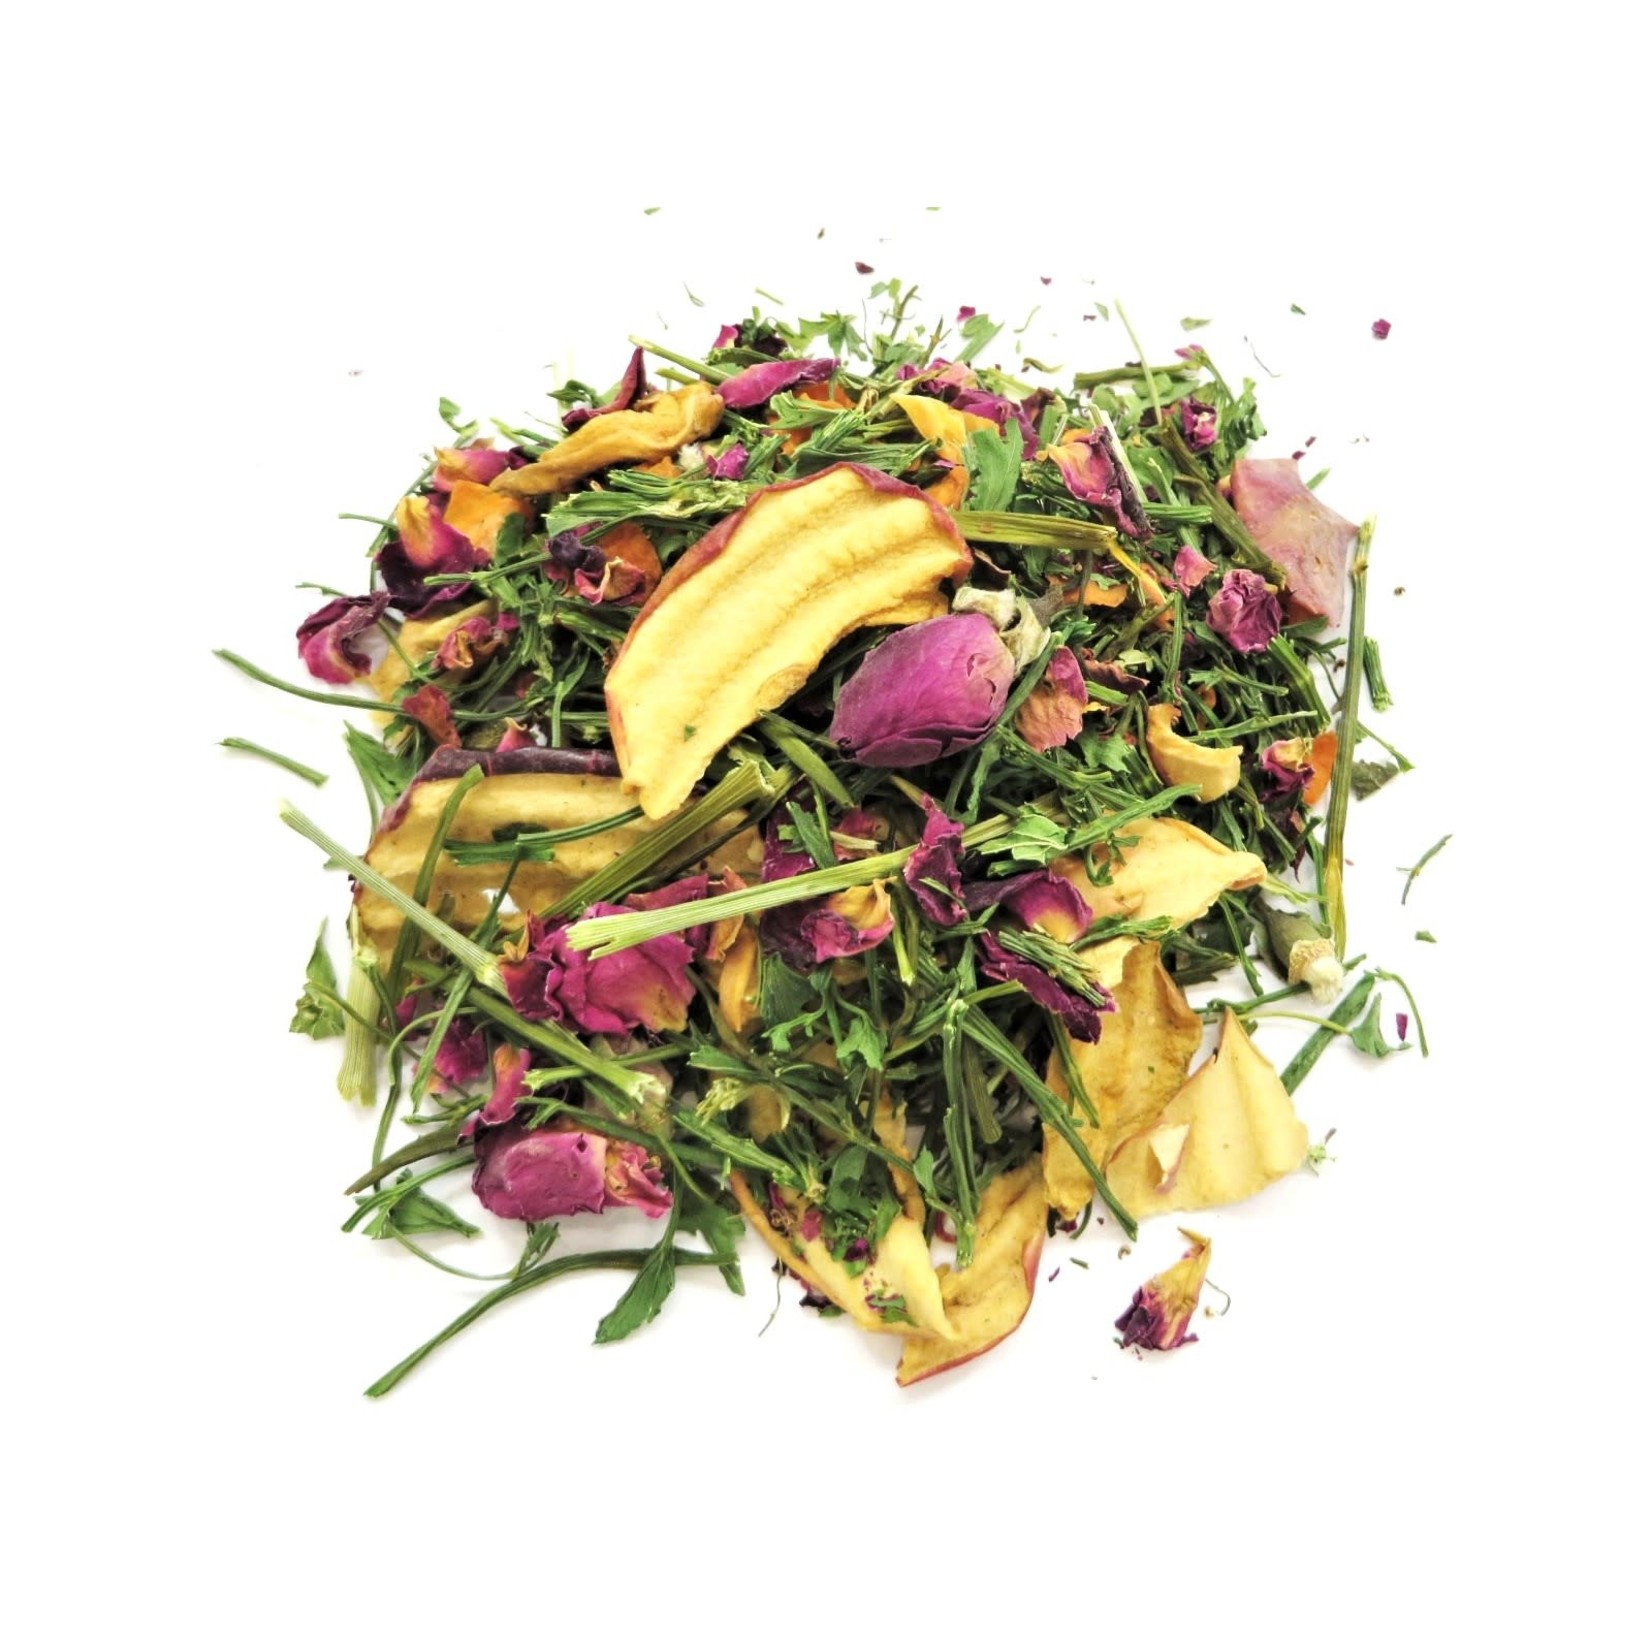 Borders Complete Small Animal Mix 'Everything But' - parsley, dill stalks, celery, apple chips, rose flowers, carrot 70g